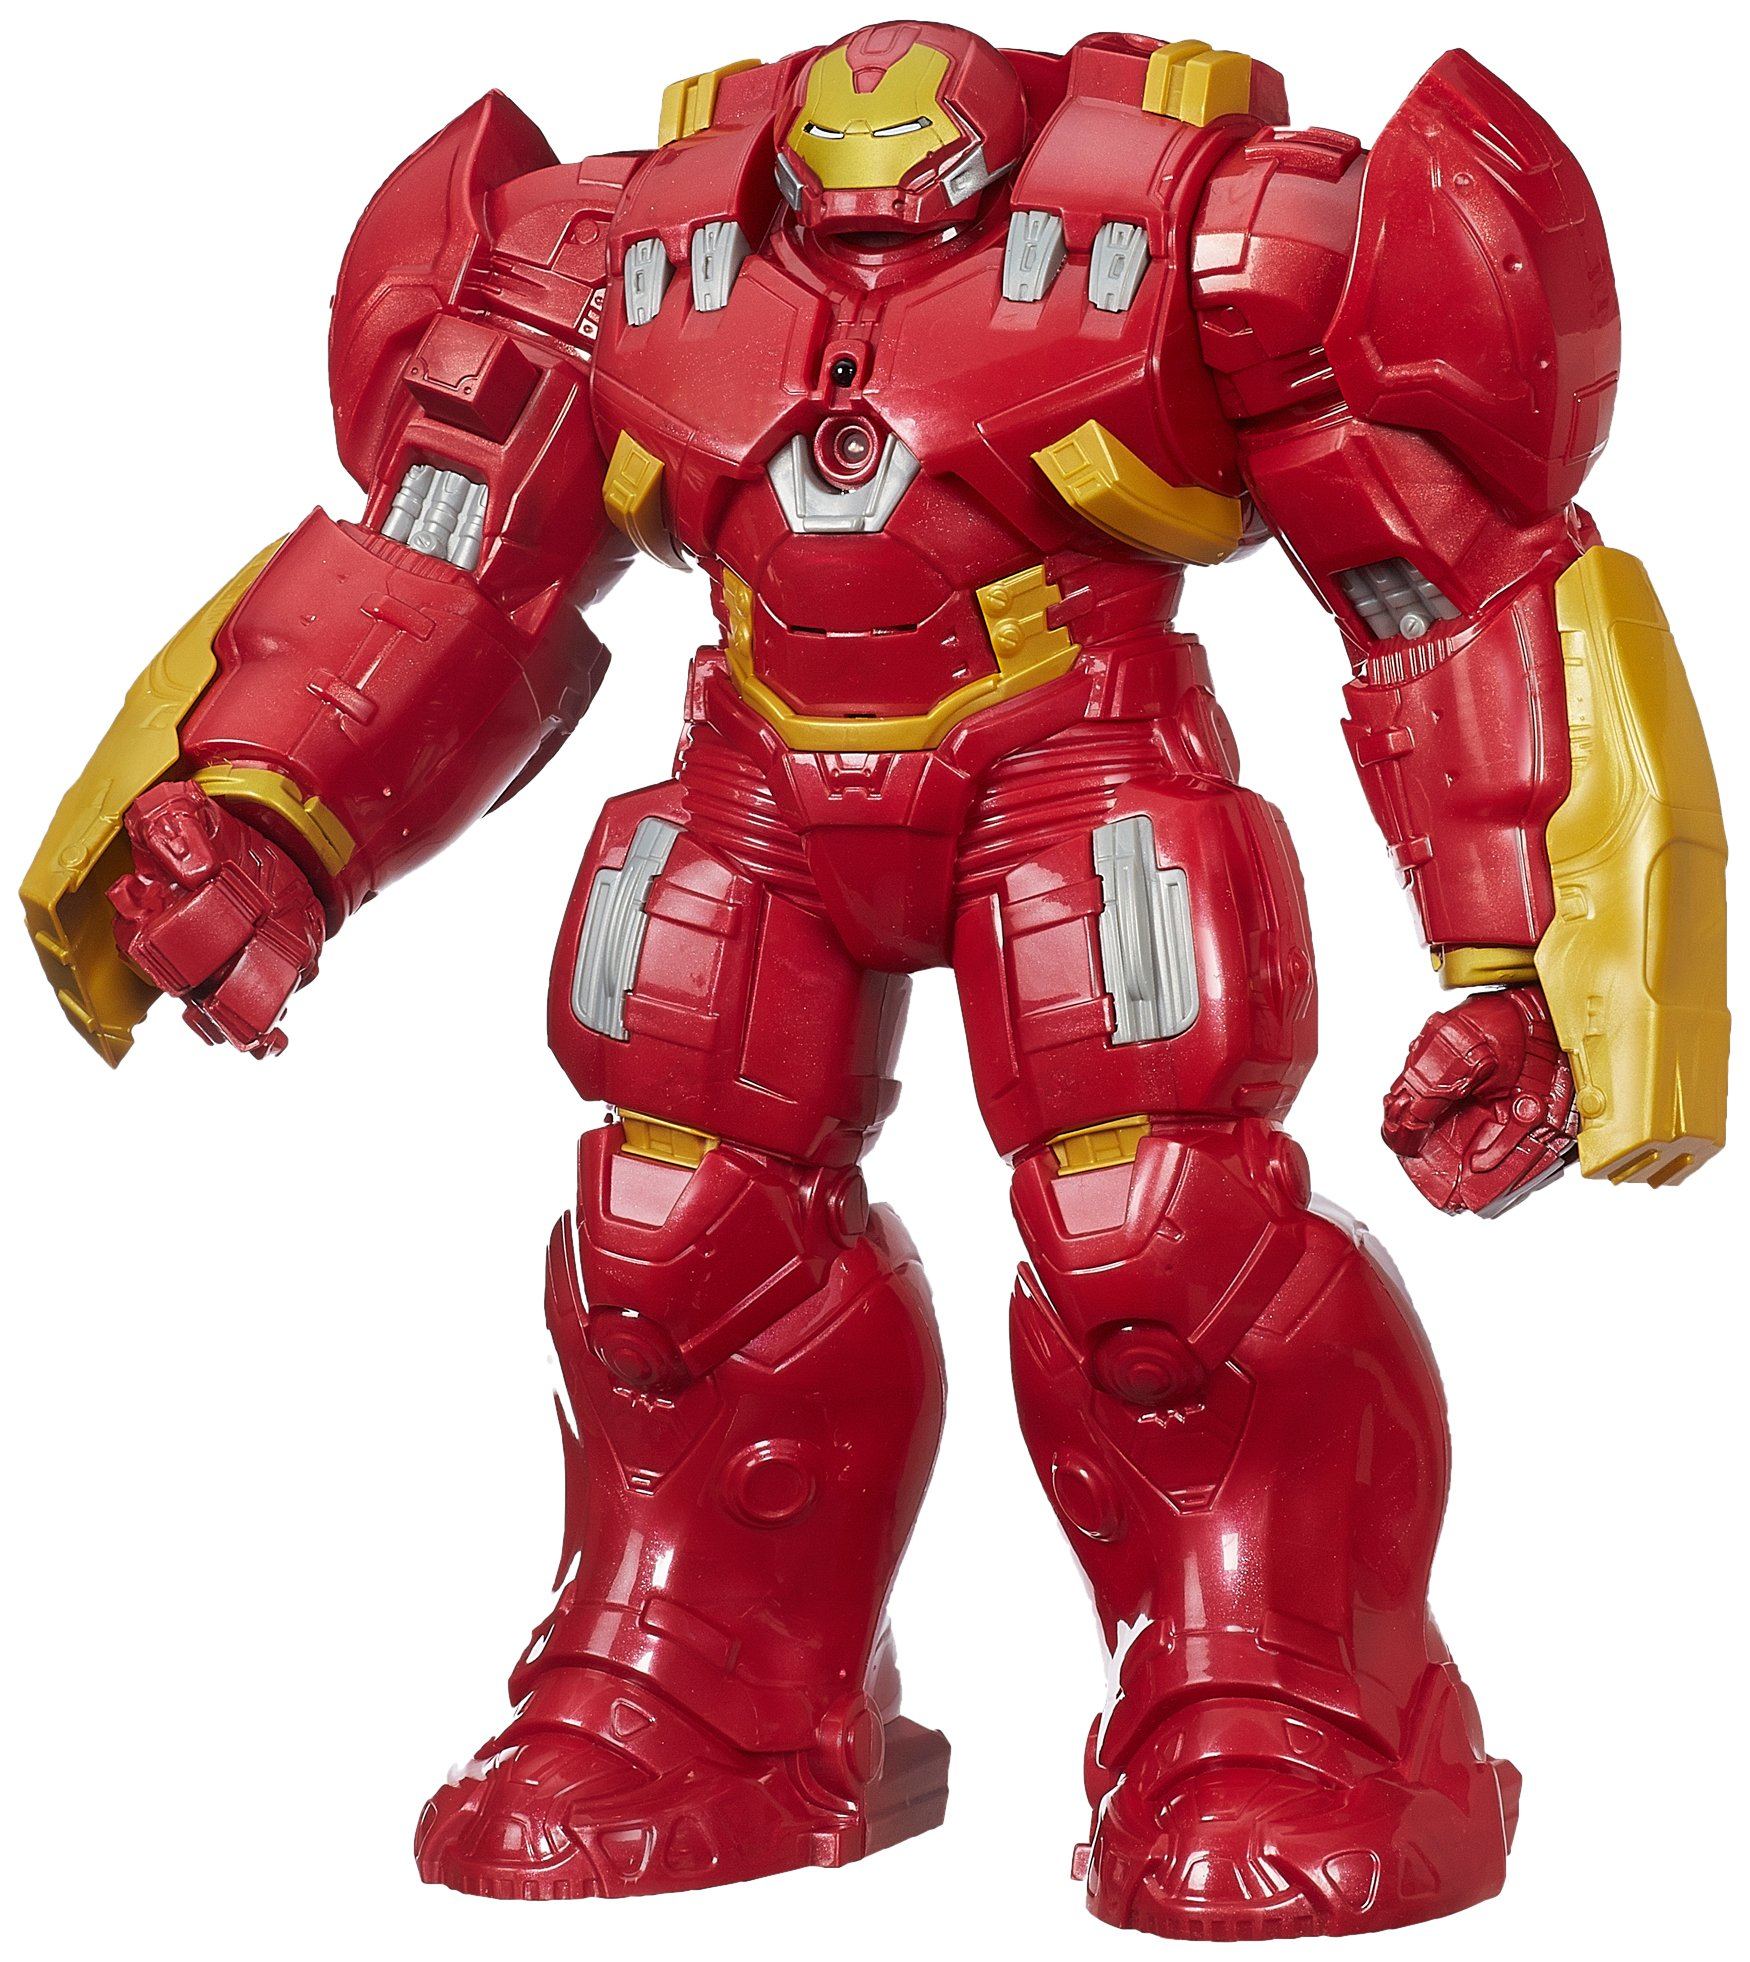 Toys From Hasbro : Marvel avengers titan hero tech interactive hulk buster